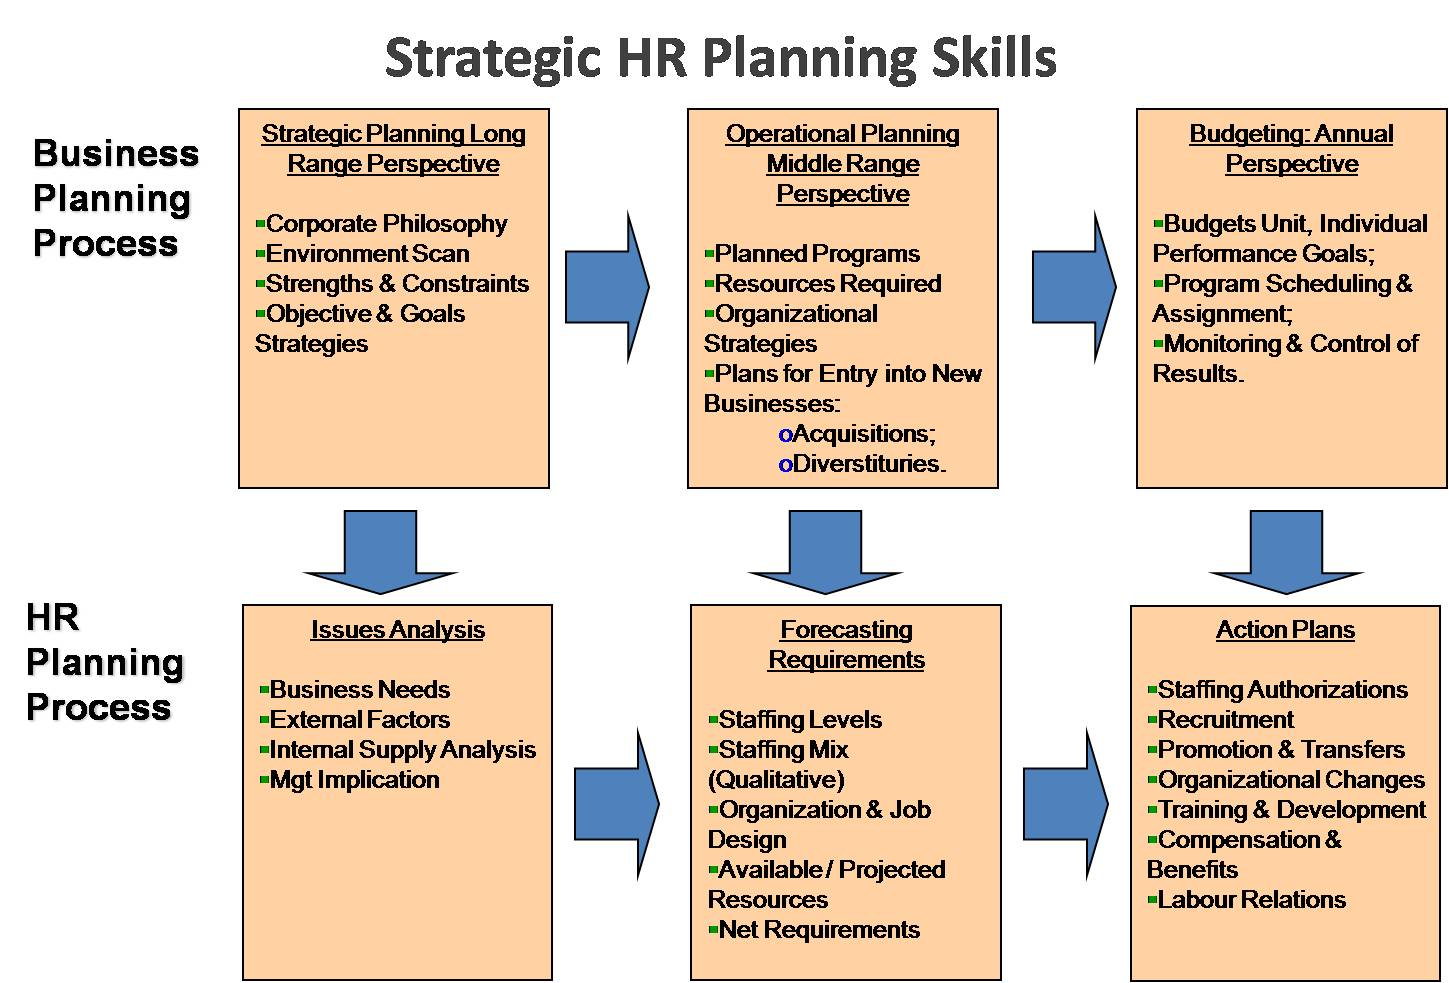 E hrm inc strategic human resource planning skills for Human resources strategic planning template